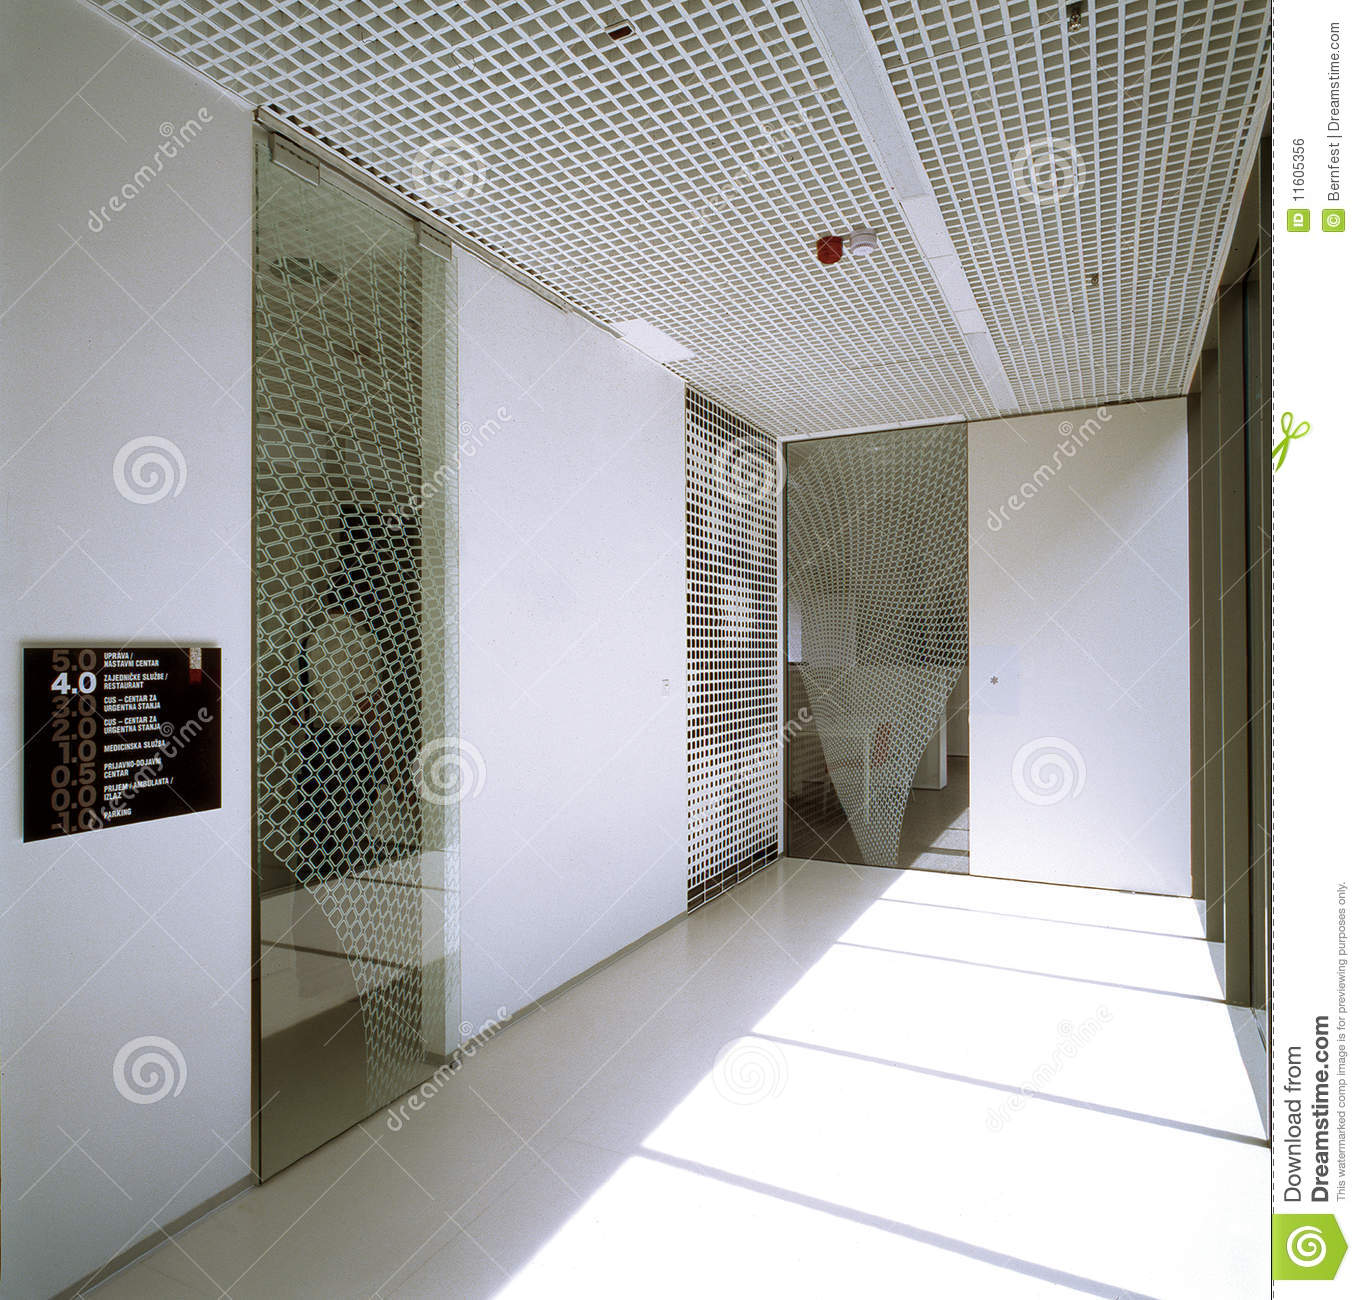 Hallway in modern office building stock photo image for Office hallway design